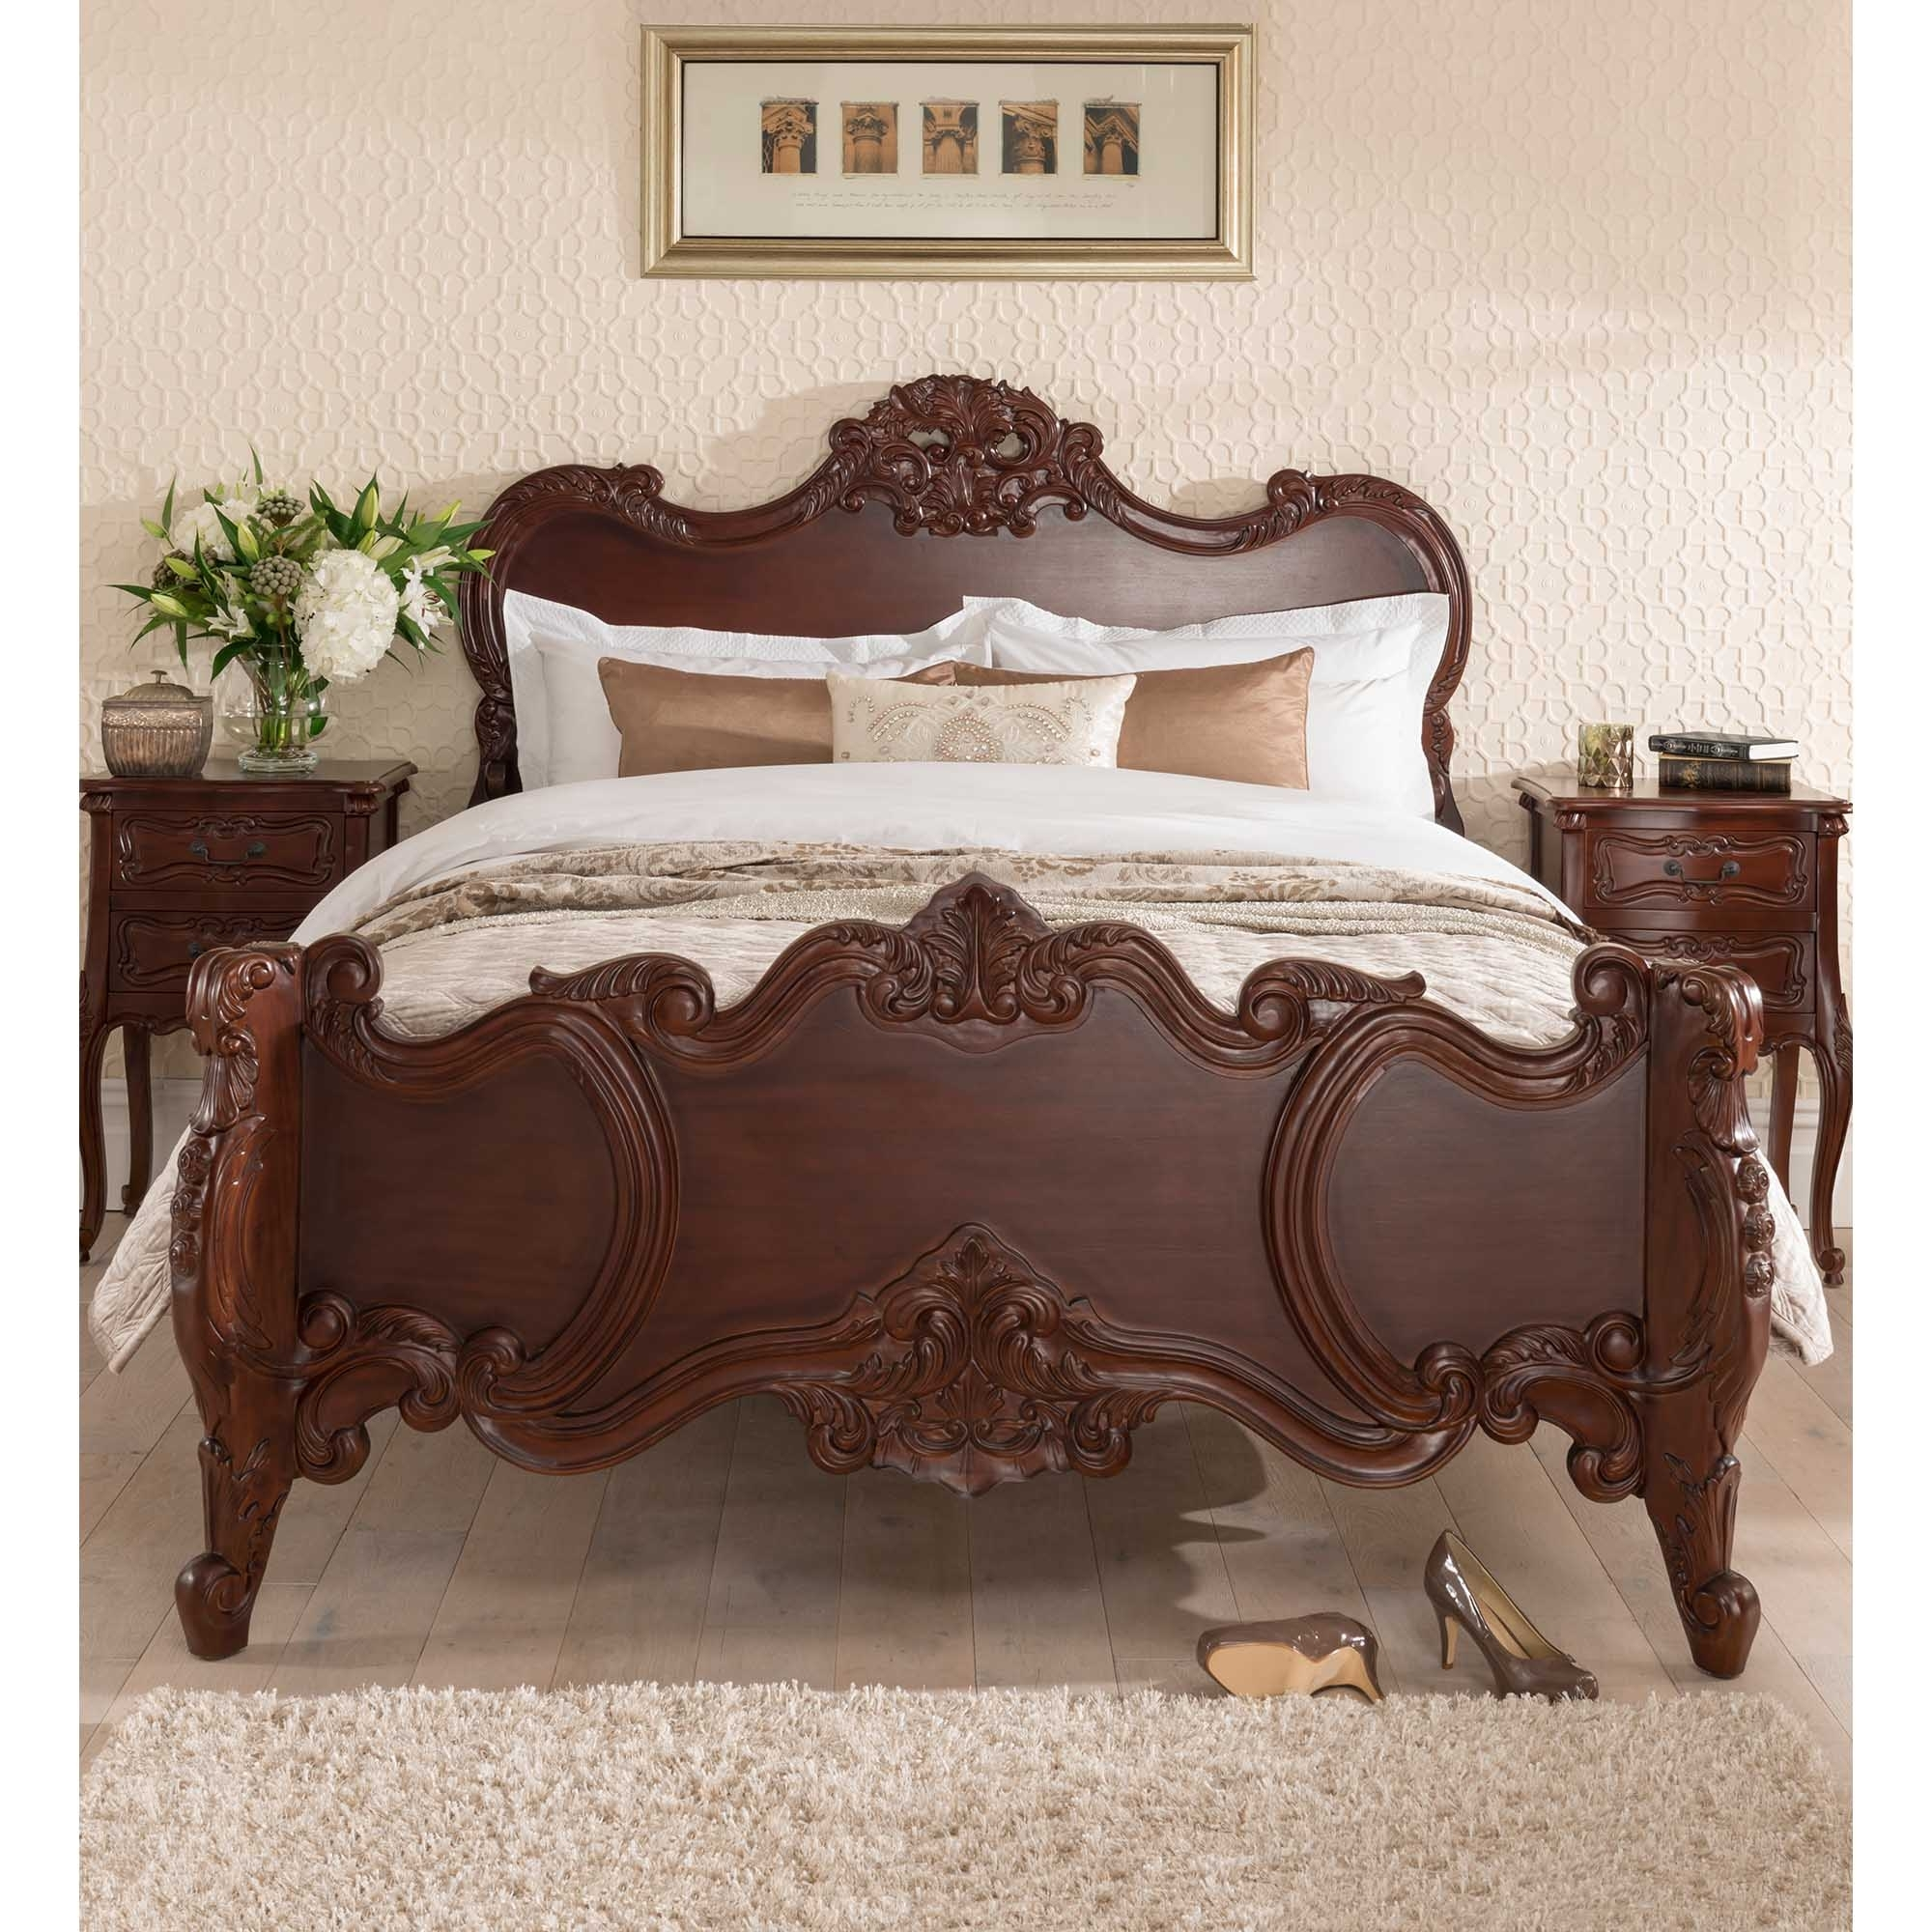 French furniture uk - Raphael Antique French Style Bed